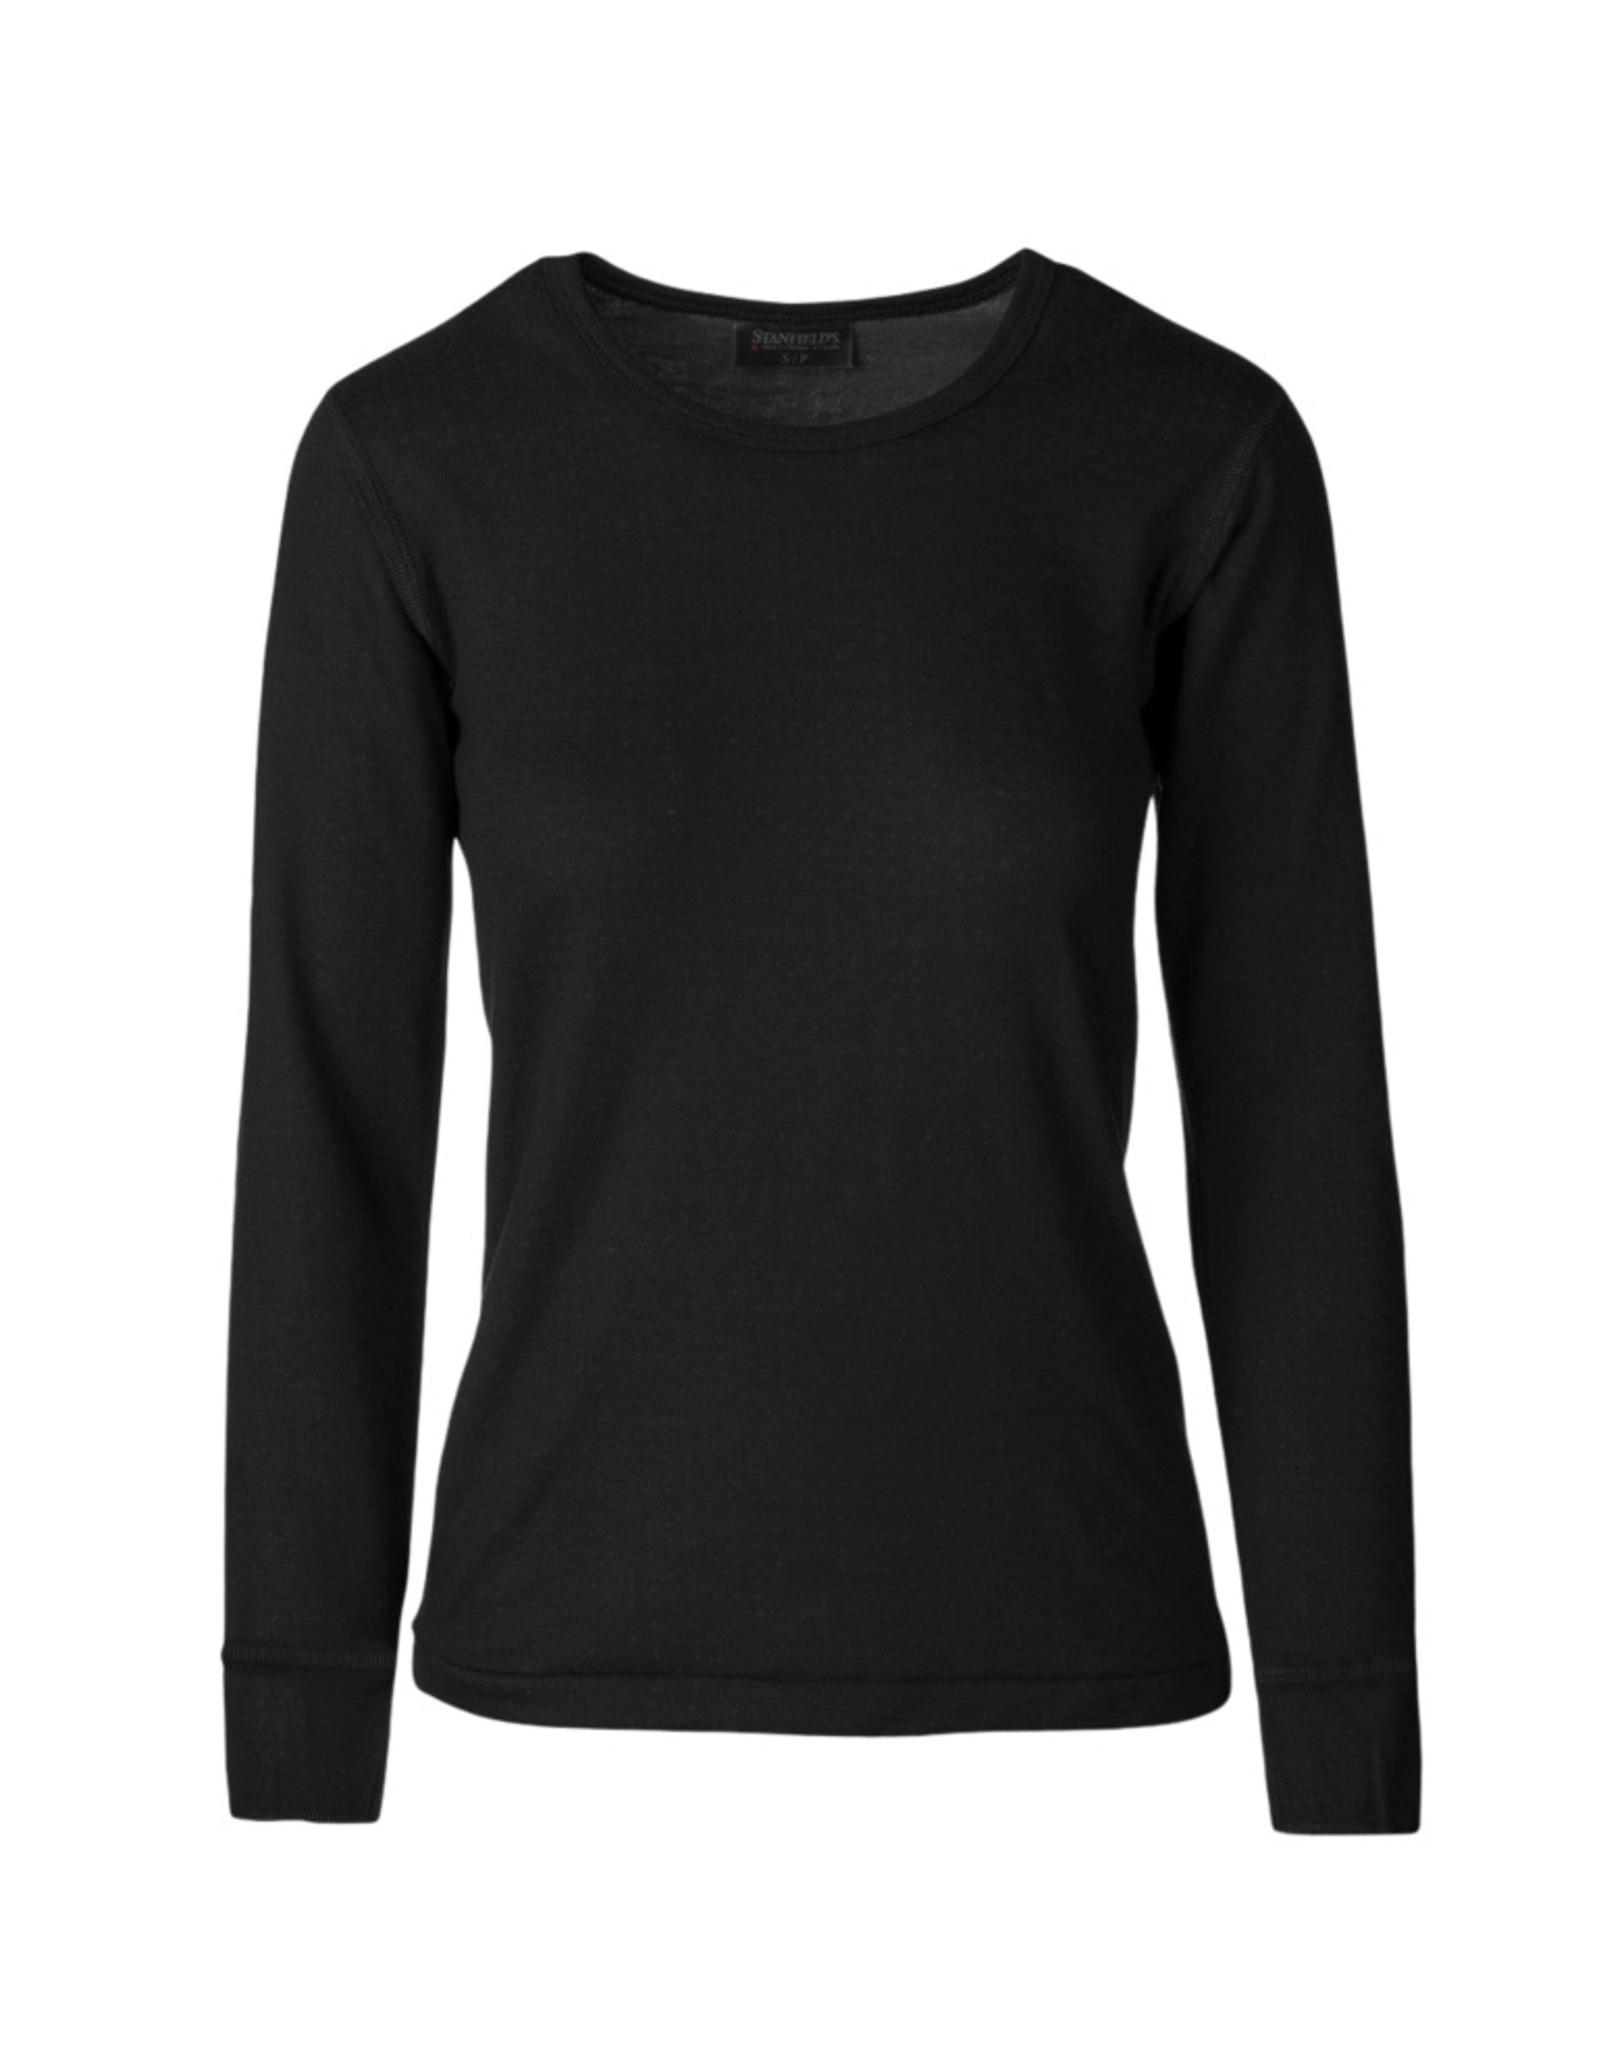 Stanfield's Stanfield's Women's Two Layer Wool Blend Base Layer Top